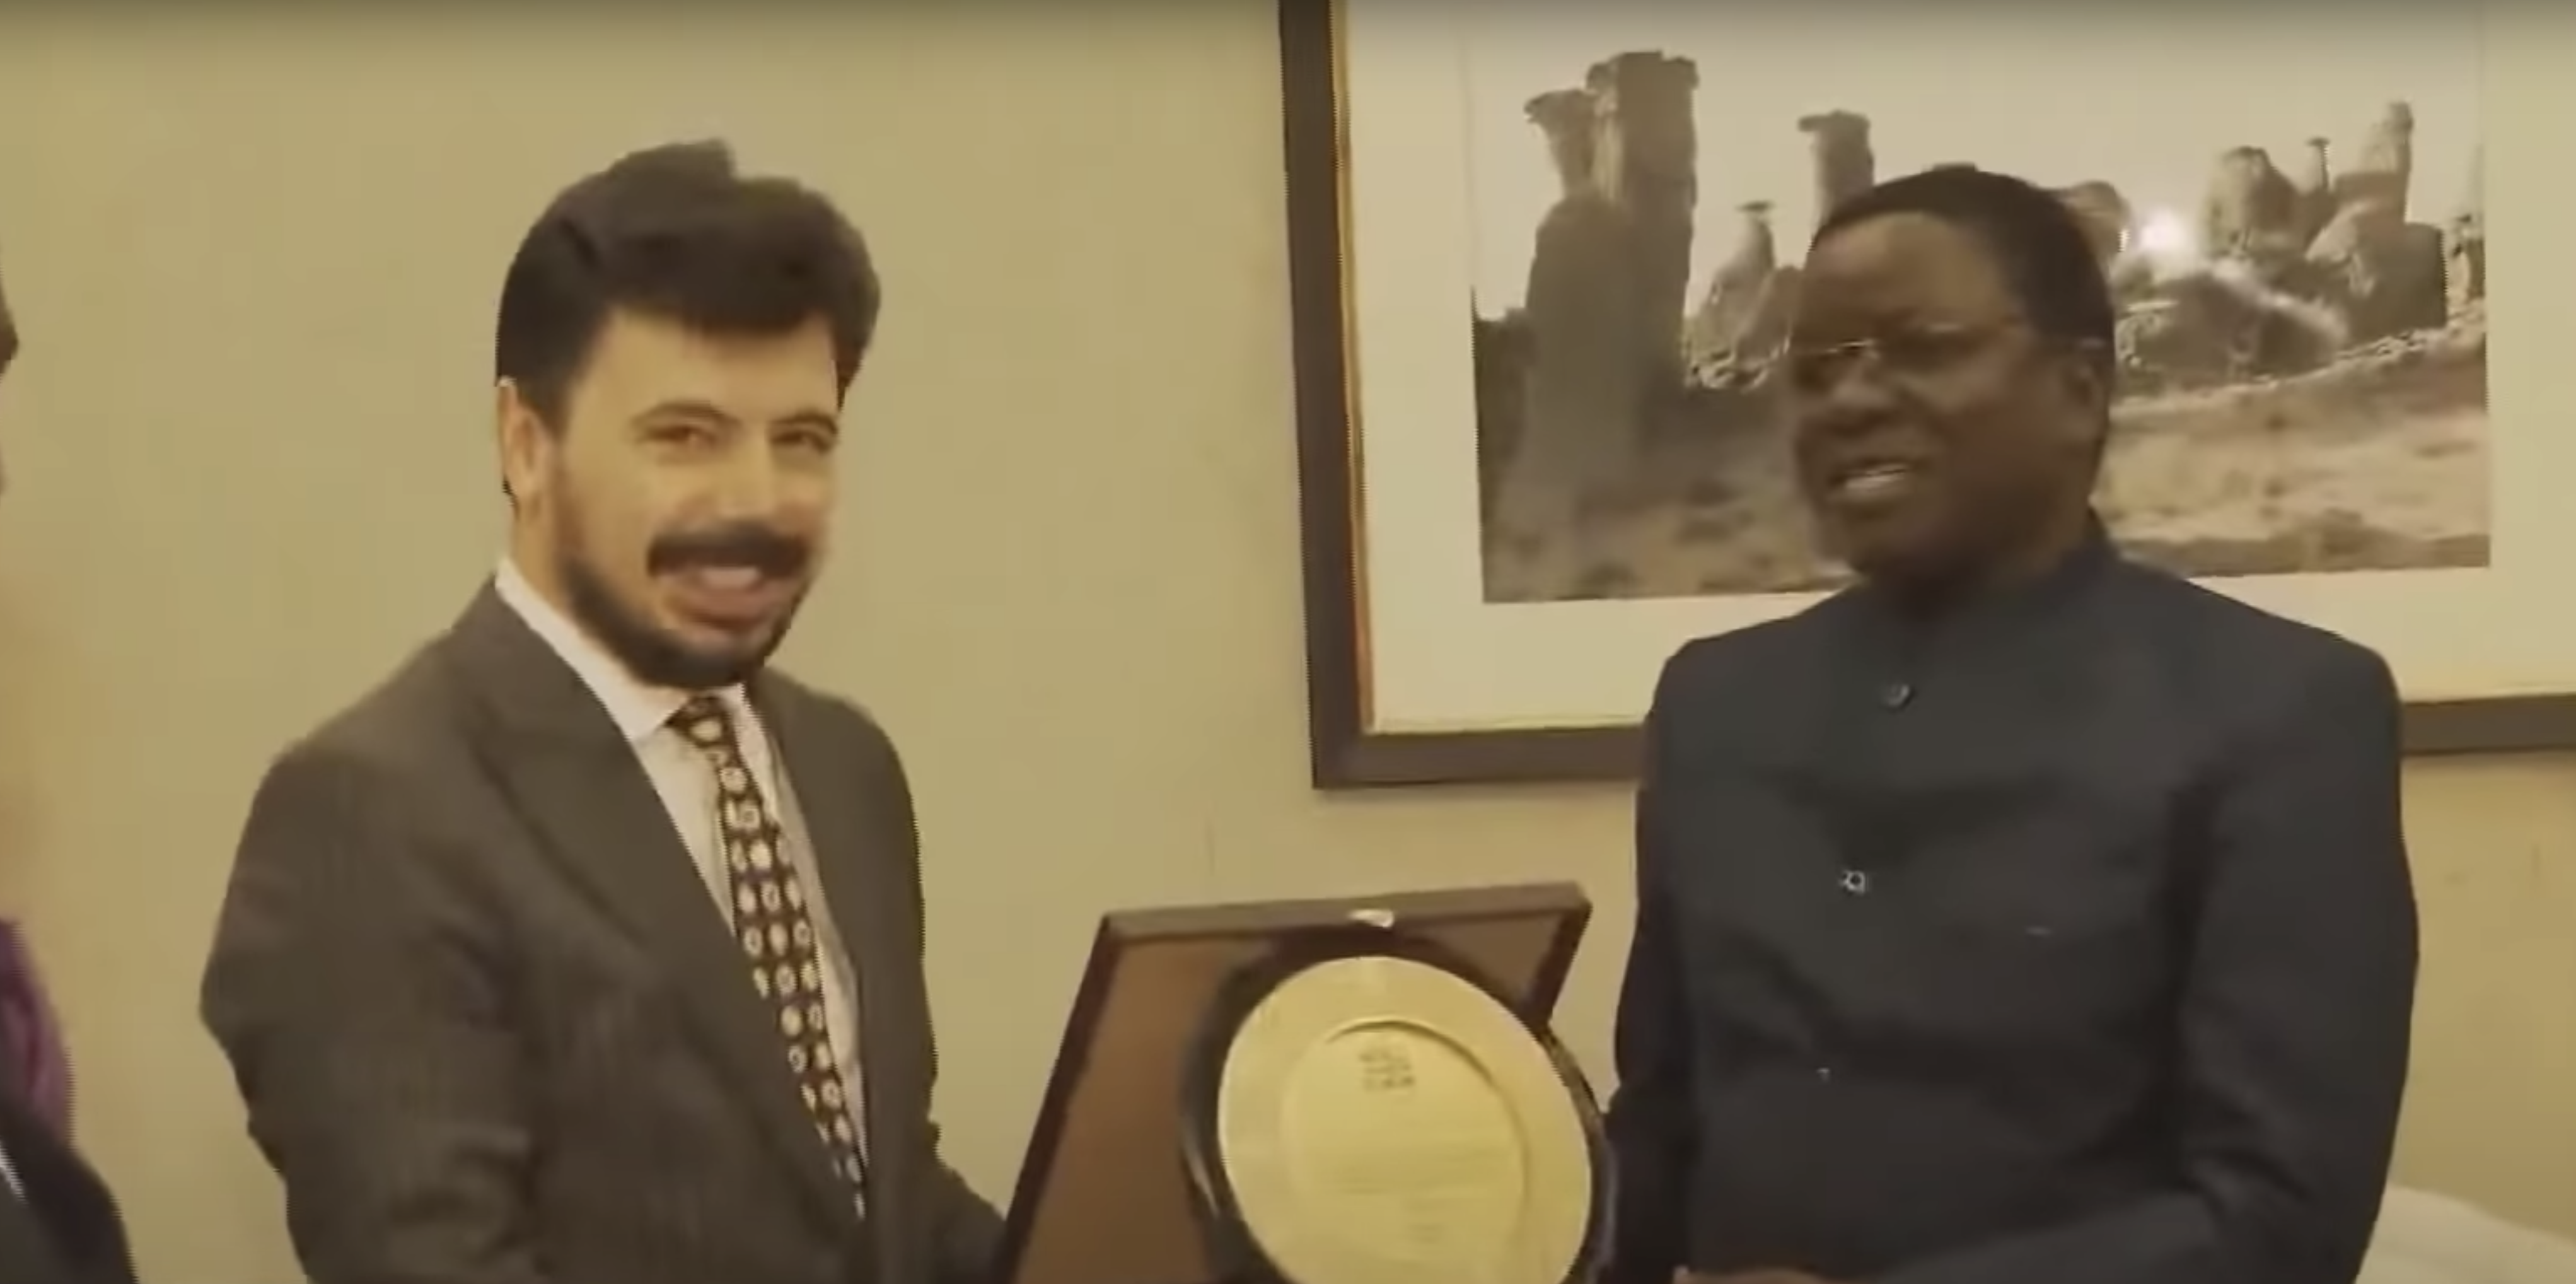 Bulut BAĞCI met with the Chadian Prime Minister